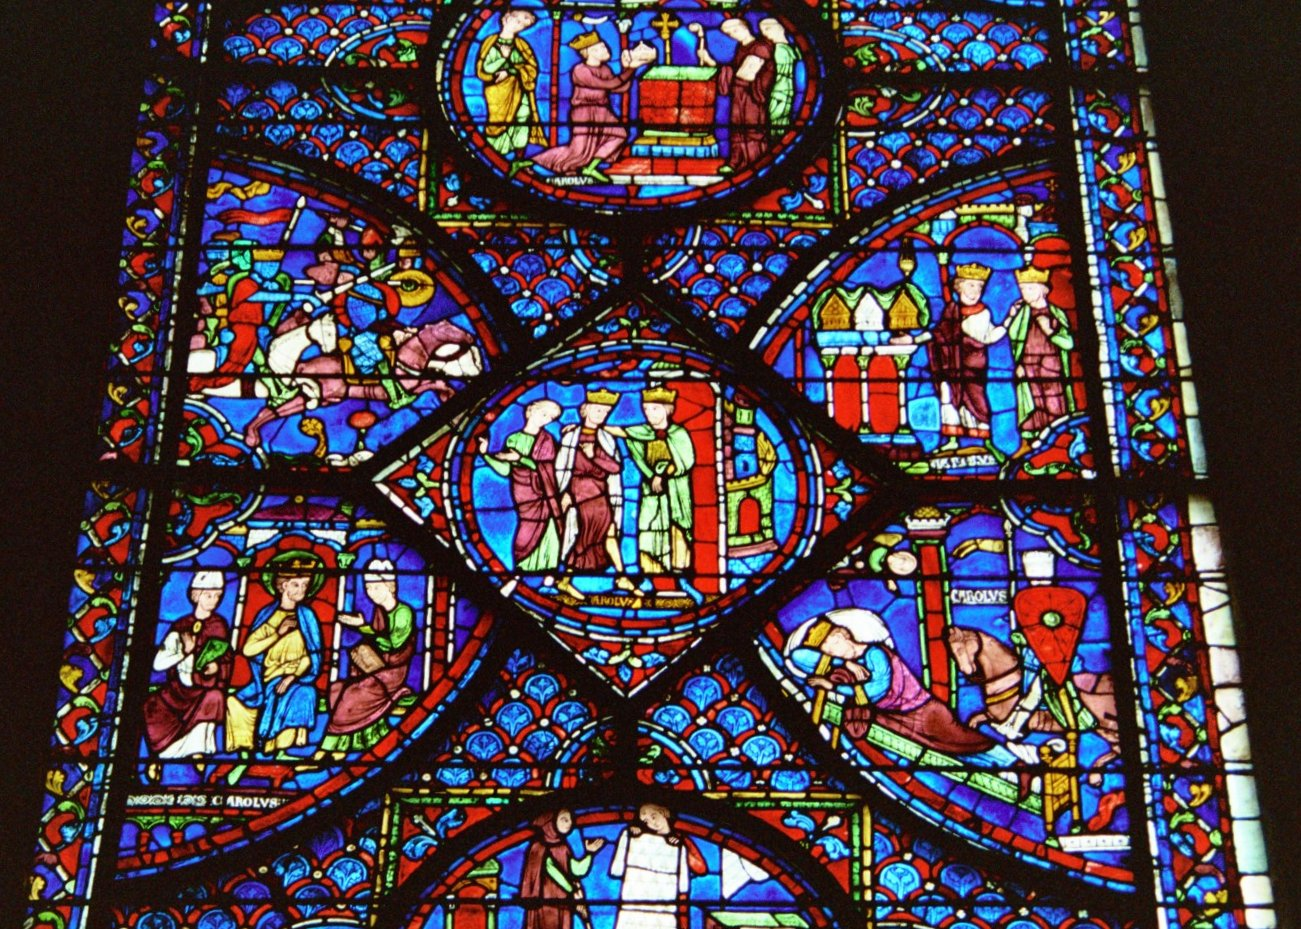 Stained Glass Window At Chartres Cathedral Via Wikmedia Courtesy Of Juan JRodriguez